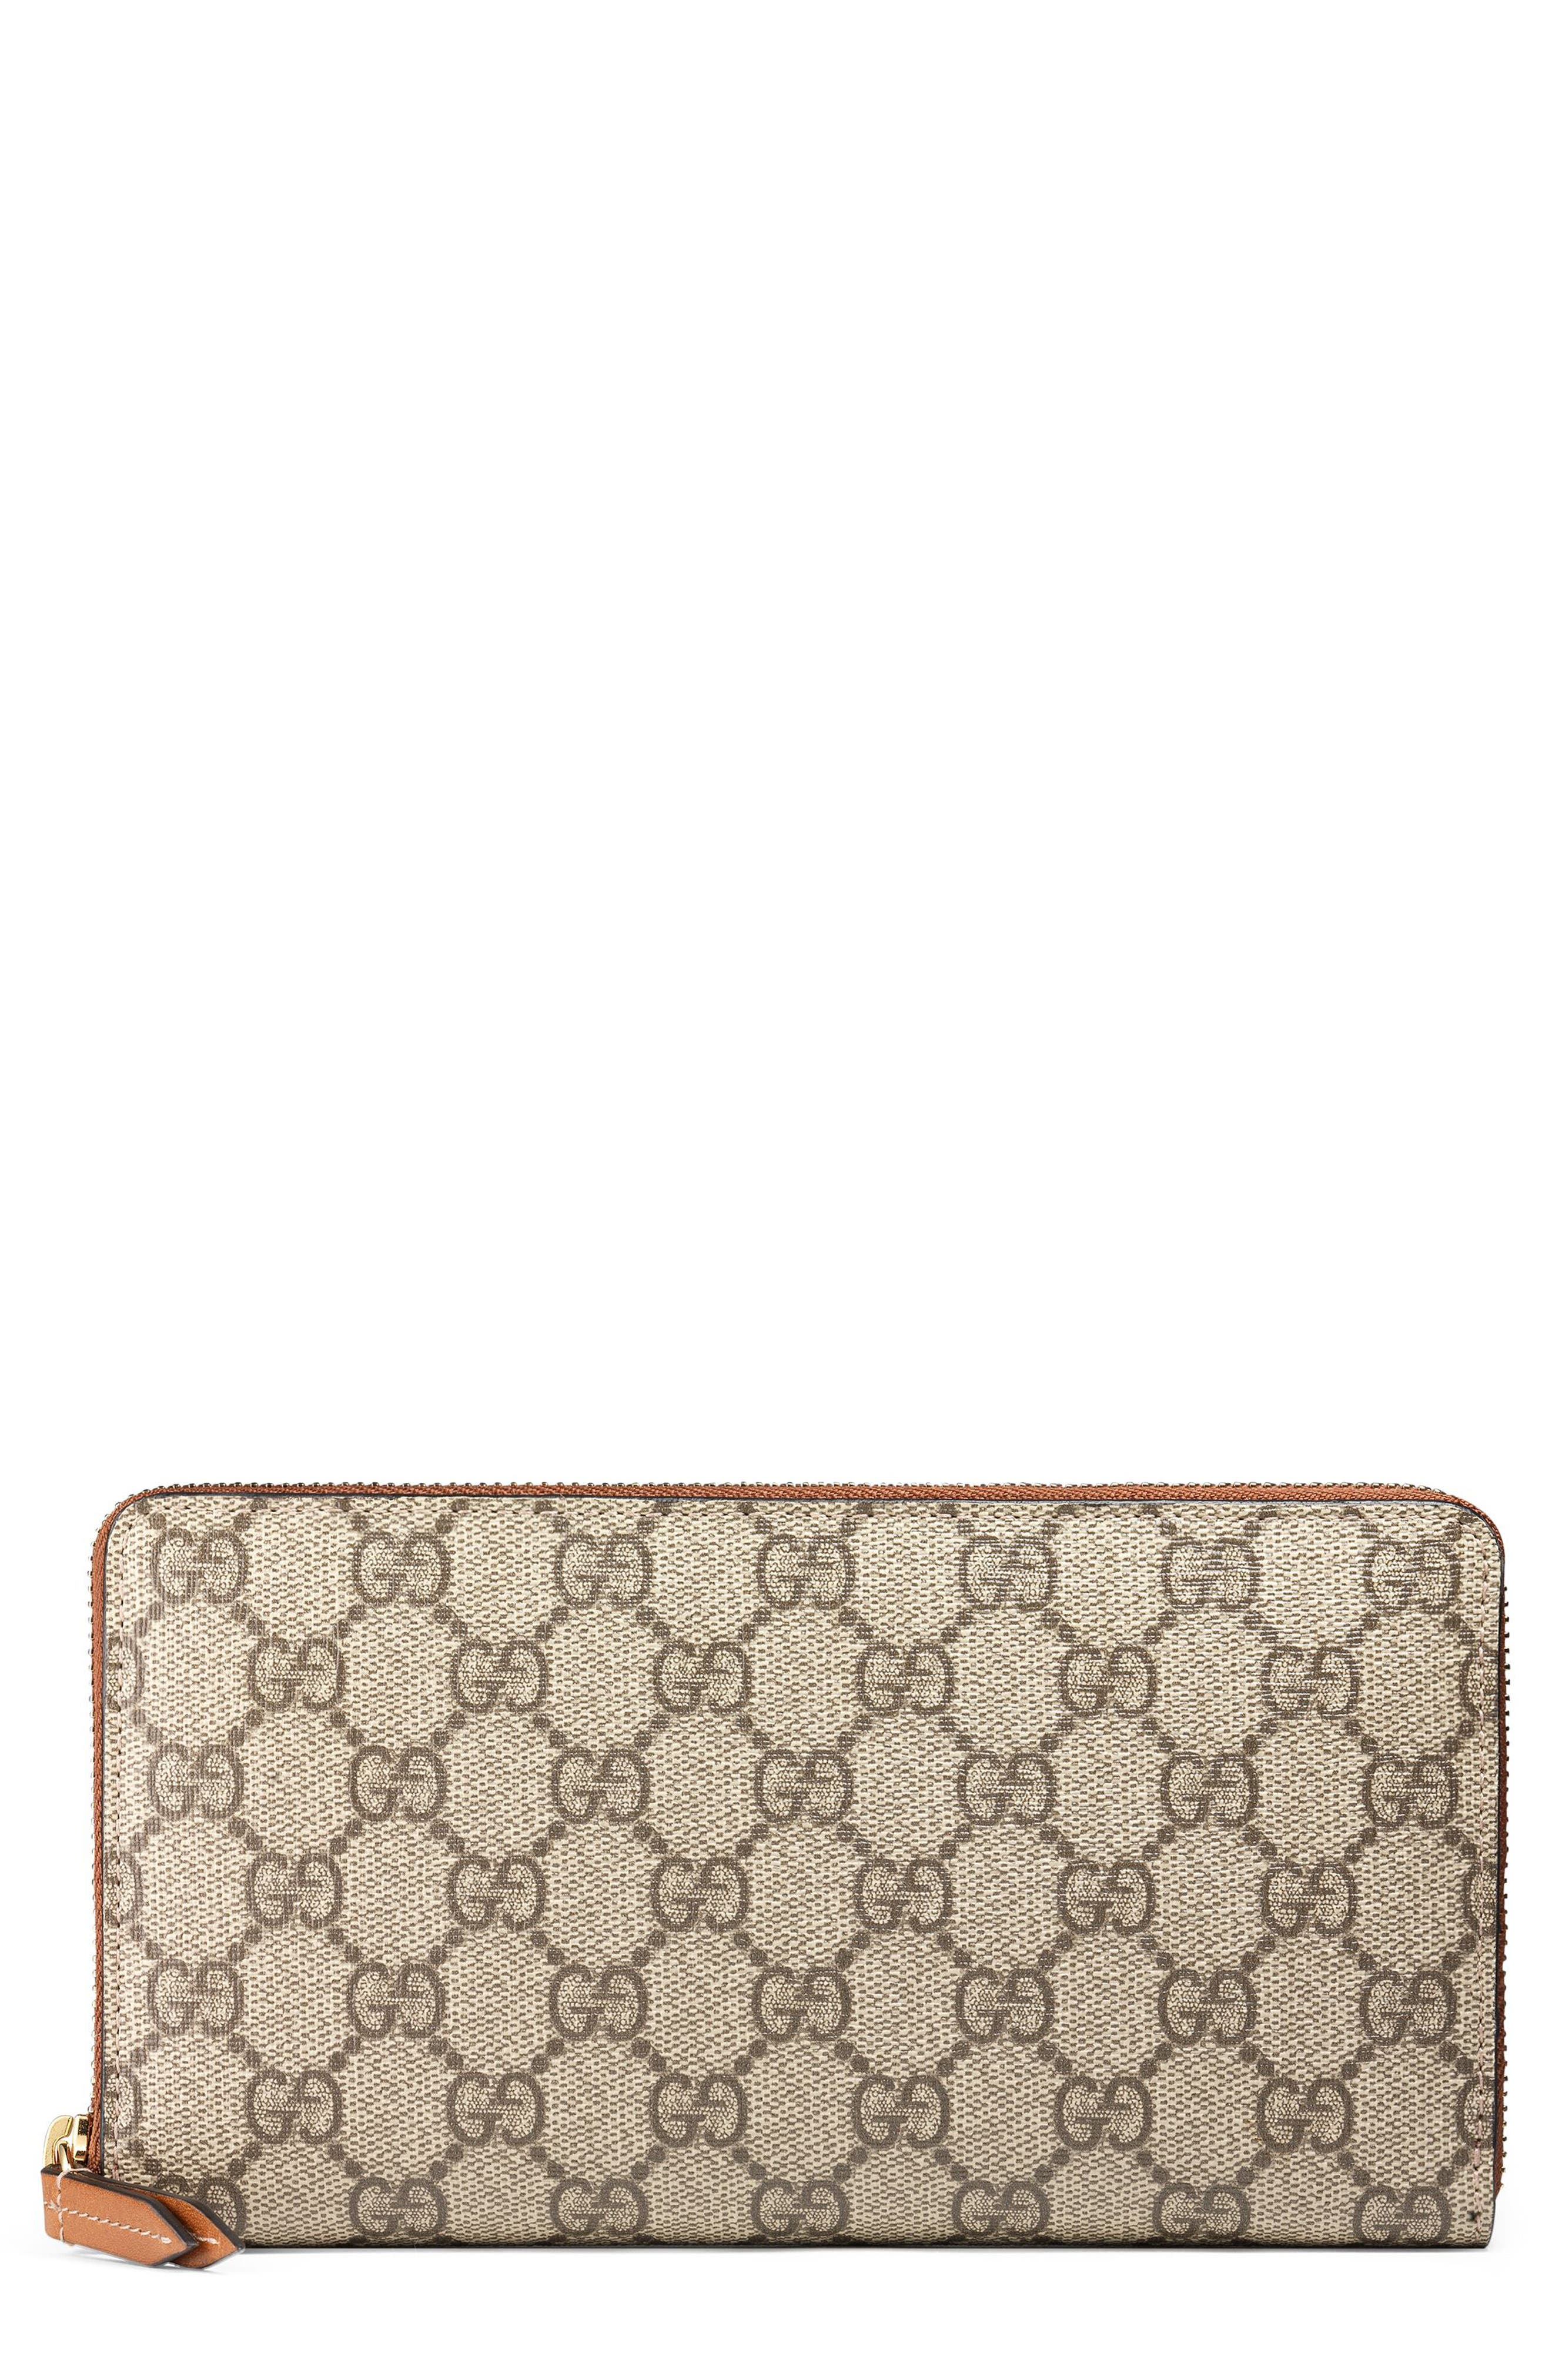 Linea GG Supreme Canvas Zip Around Wallet,                             Main thumbnail 1, color,                             BEIGE EBONY/ CUIR